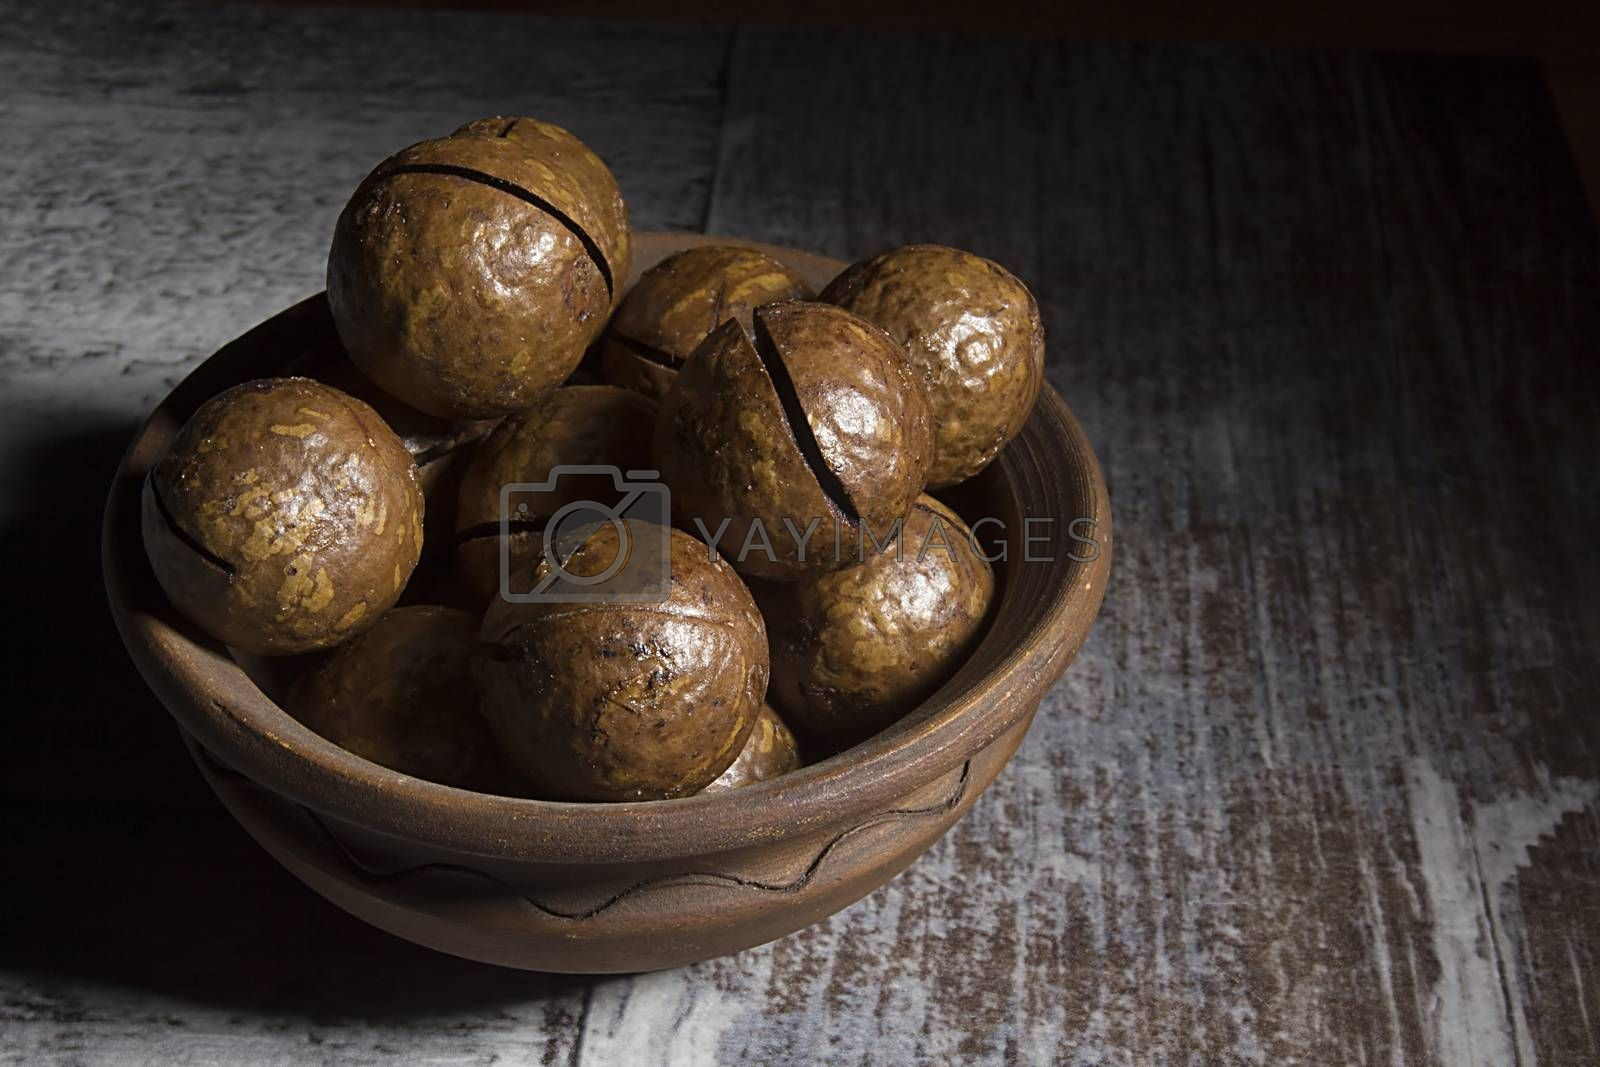 Macadamia nuts in shells in earthenware dish on wooden table